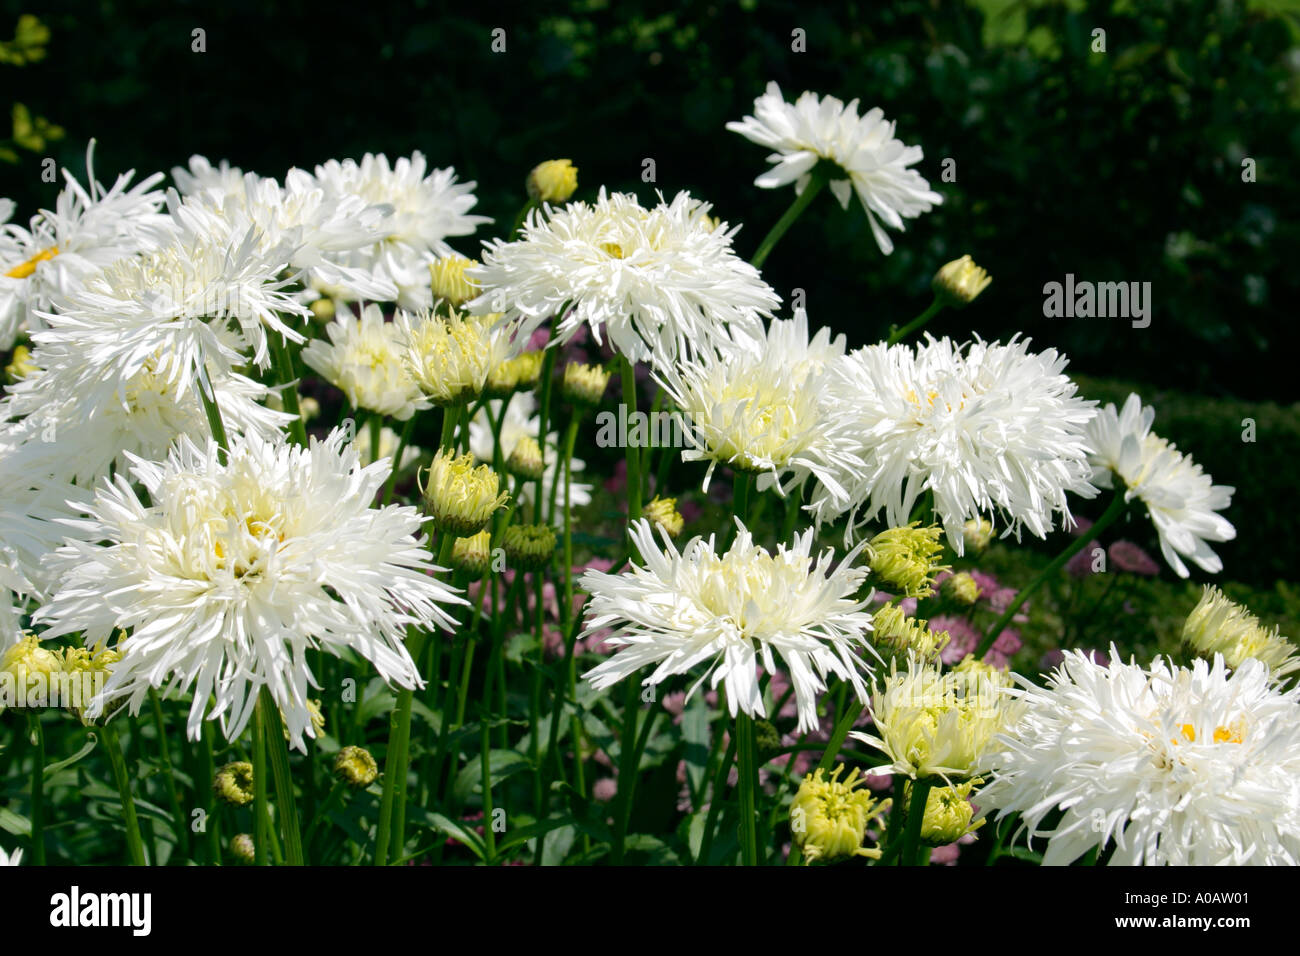 Garden flowers names - White Flowers Of Garden Plant Leucanthemum X Superbum Shaggy Common